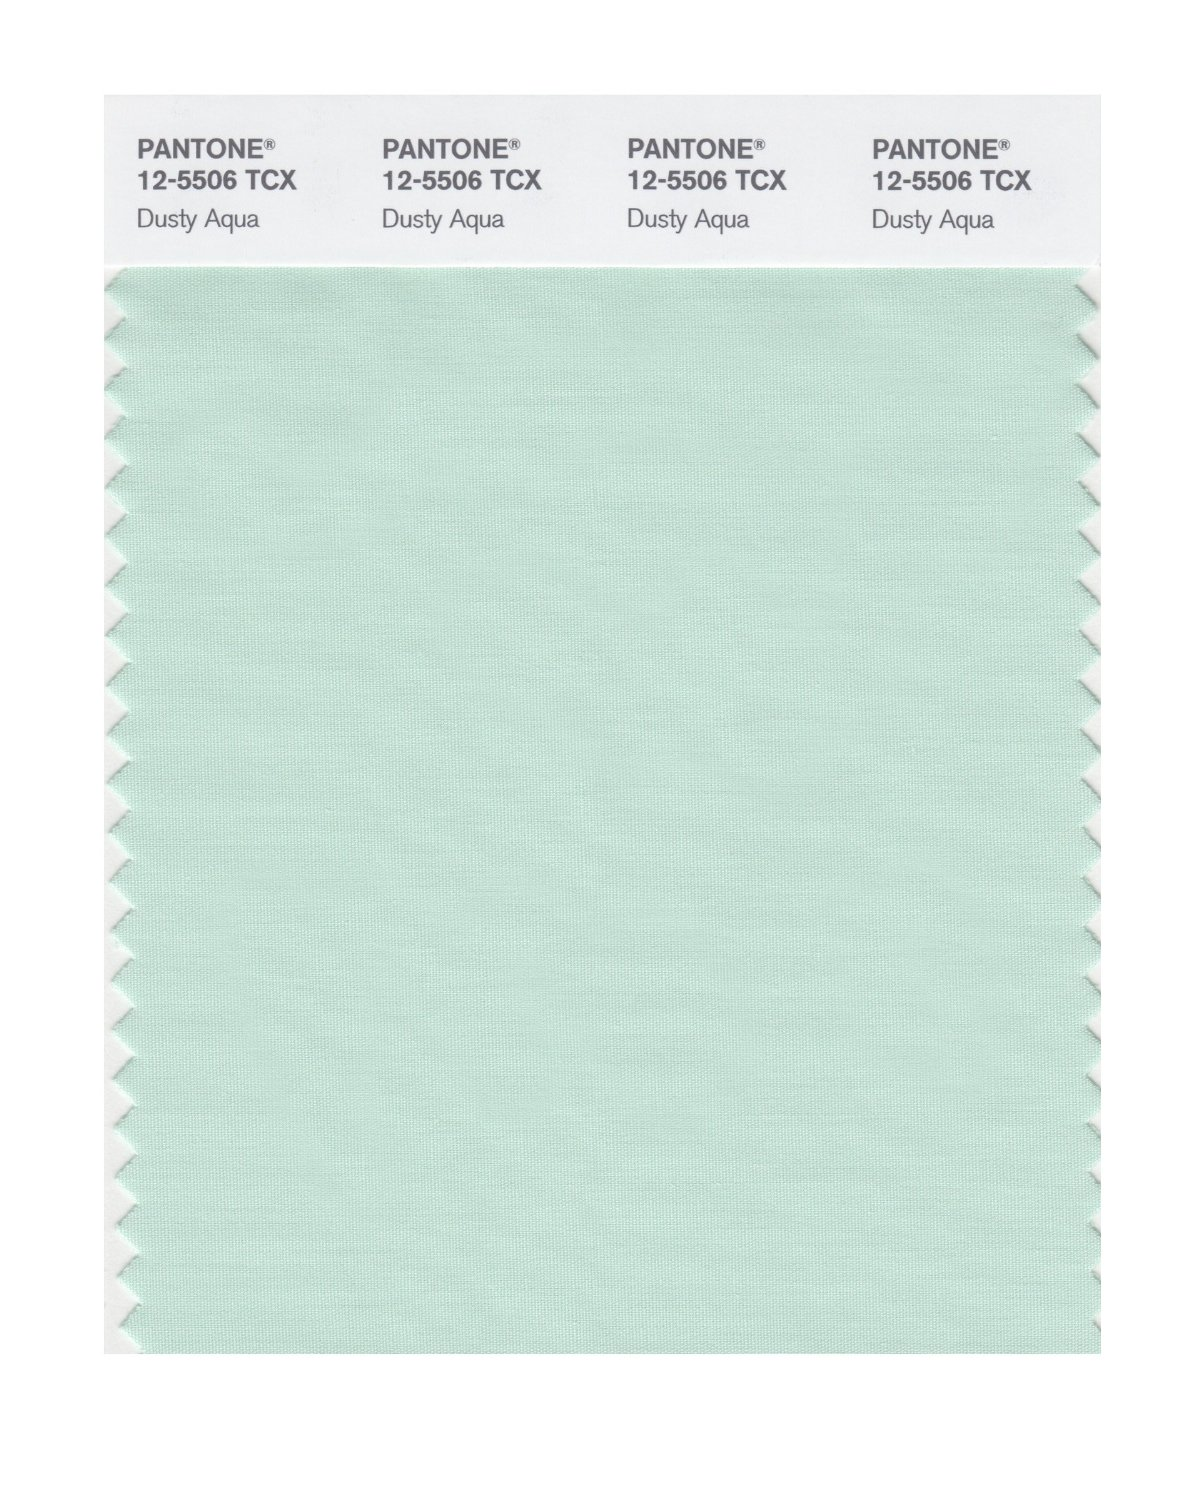 Pantone Smart Swatch 12-5506 Dusty Aqua